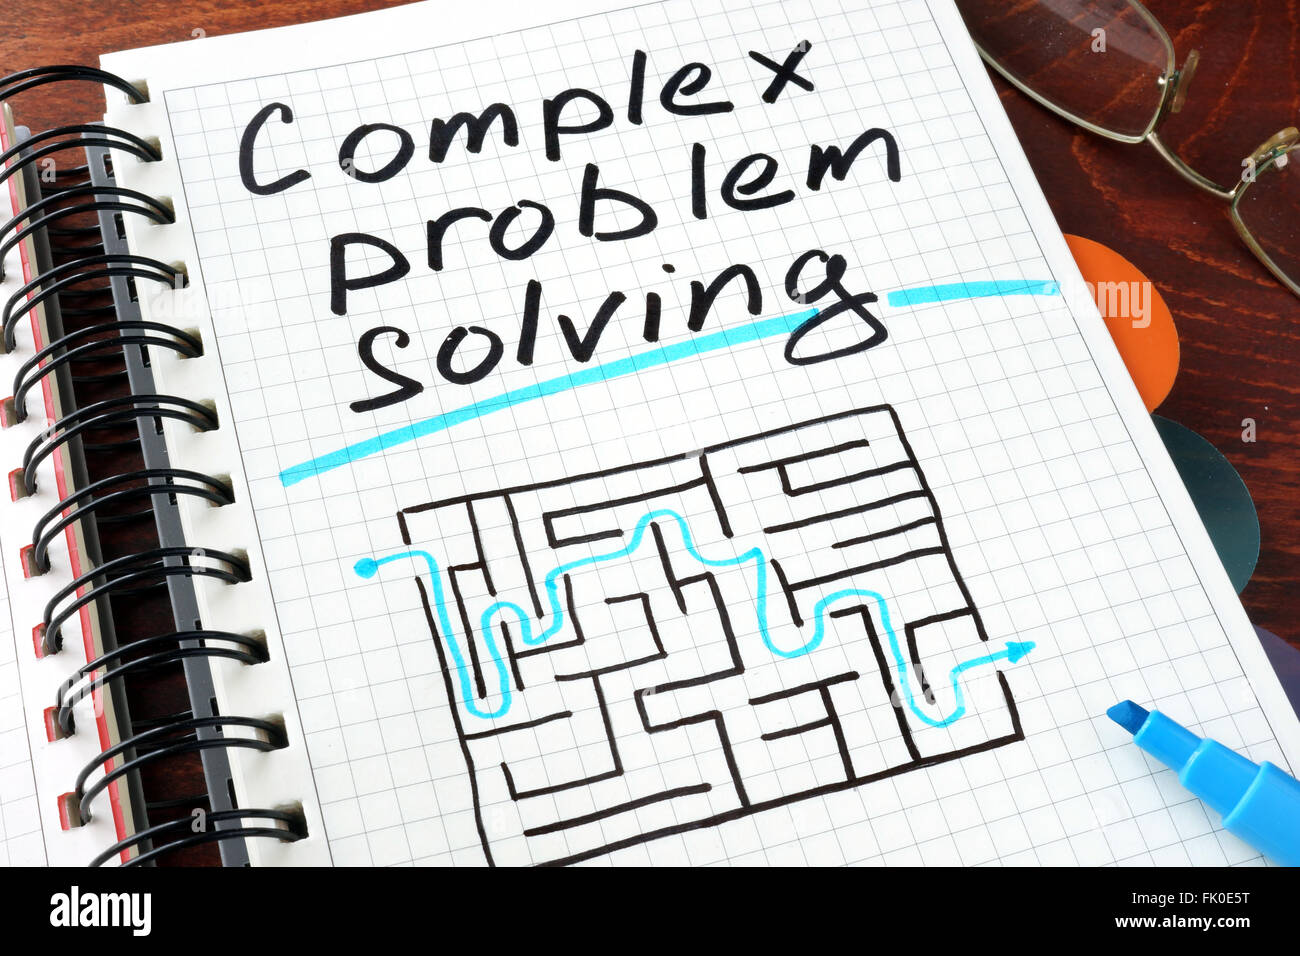 Complex problem solving written on notebook. Business concept. - Stock Image